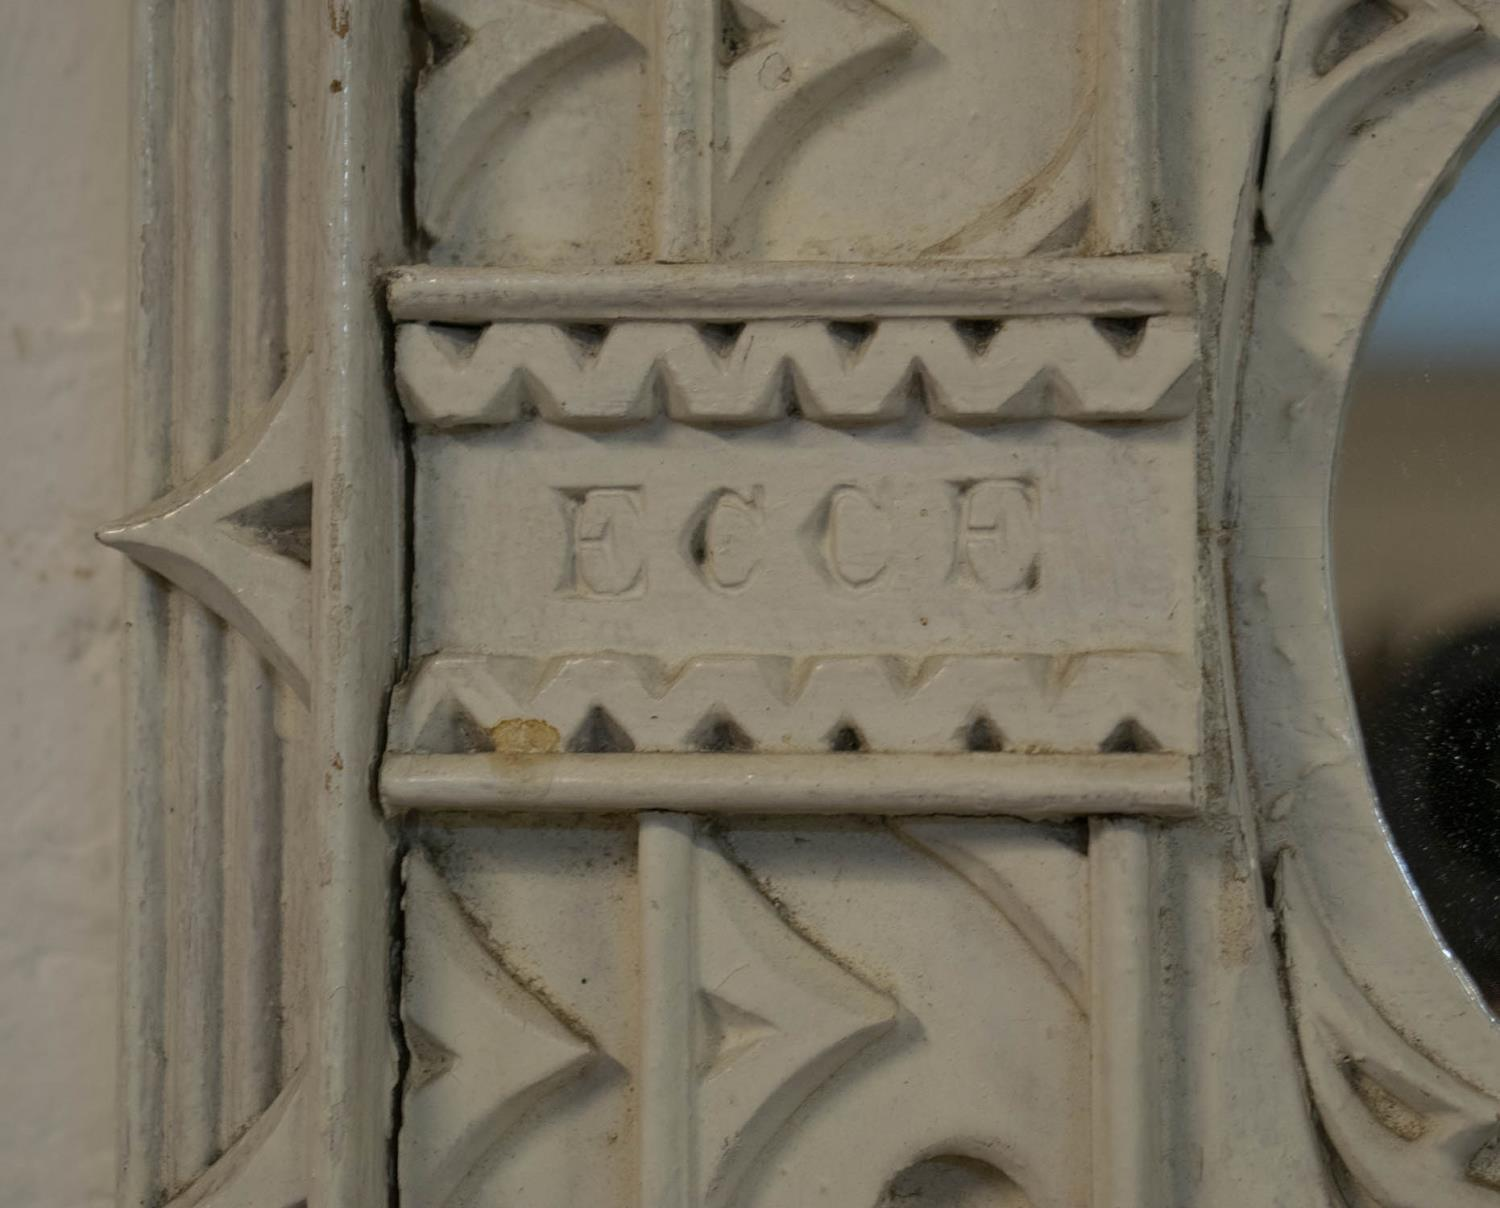 WALL MIRROR, 19th century grey painted with lobed plate and inscription 'Ecce Homo' in Gothic - Image 3 of 3